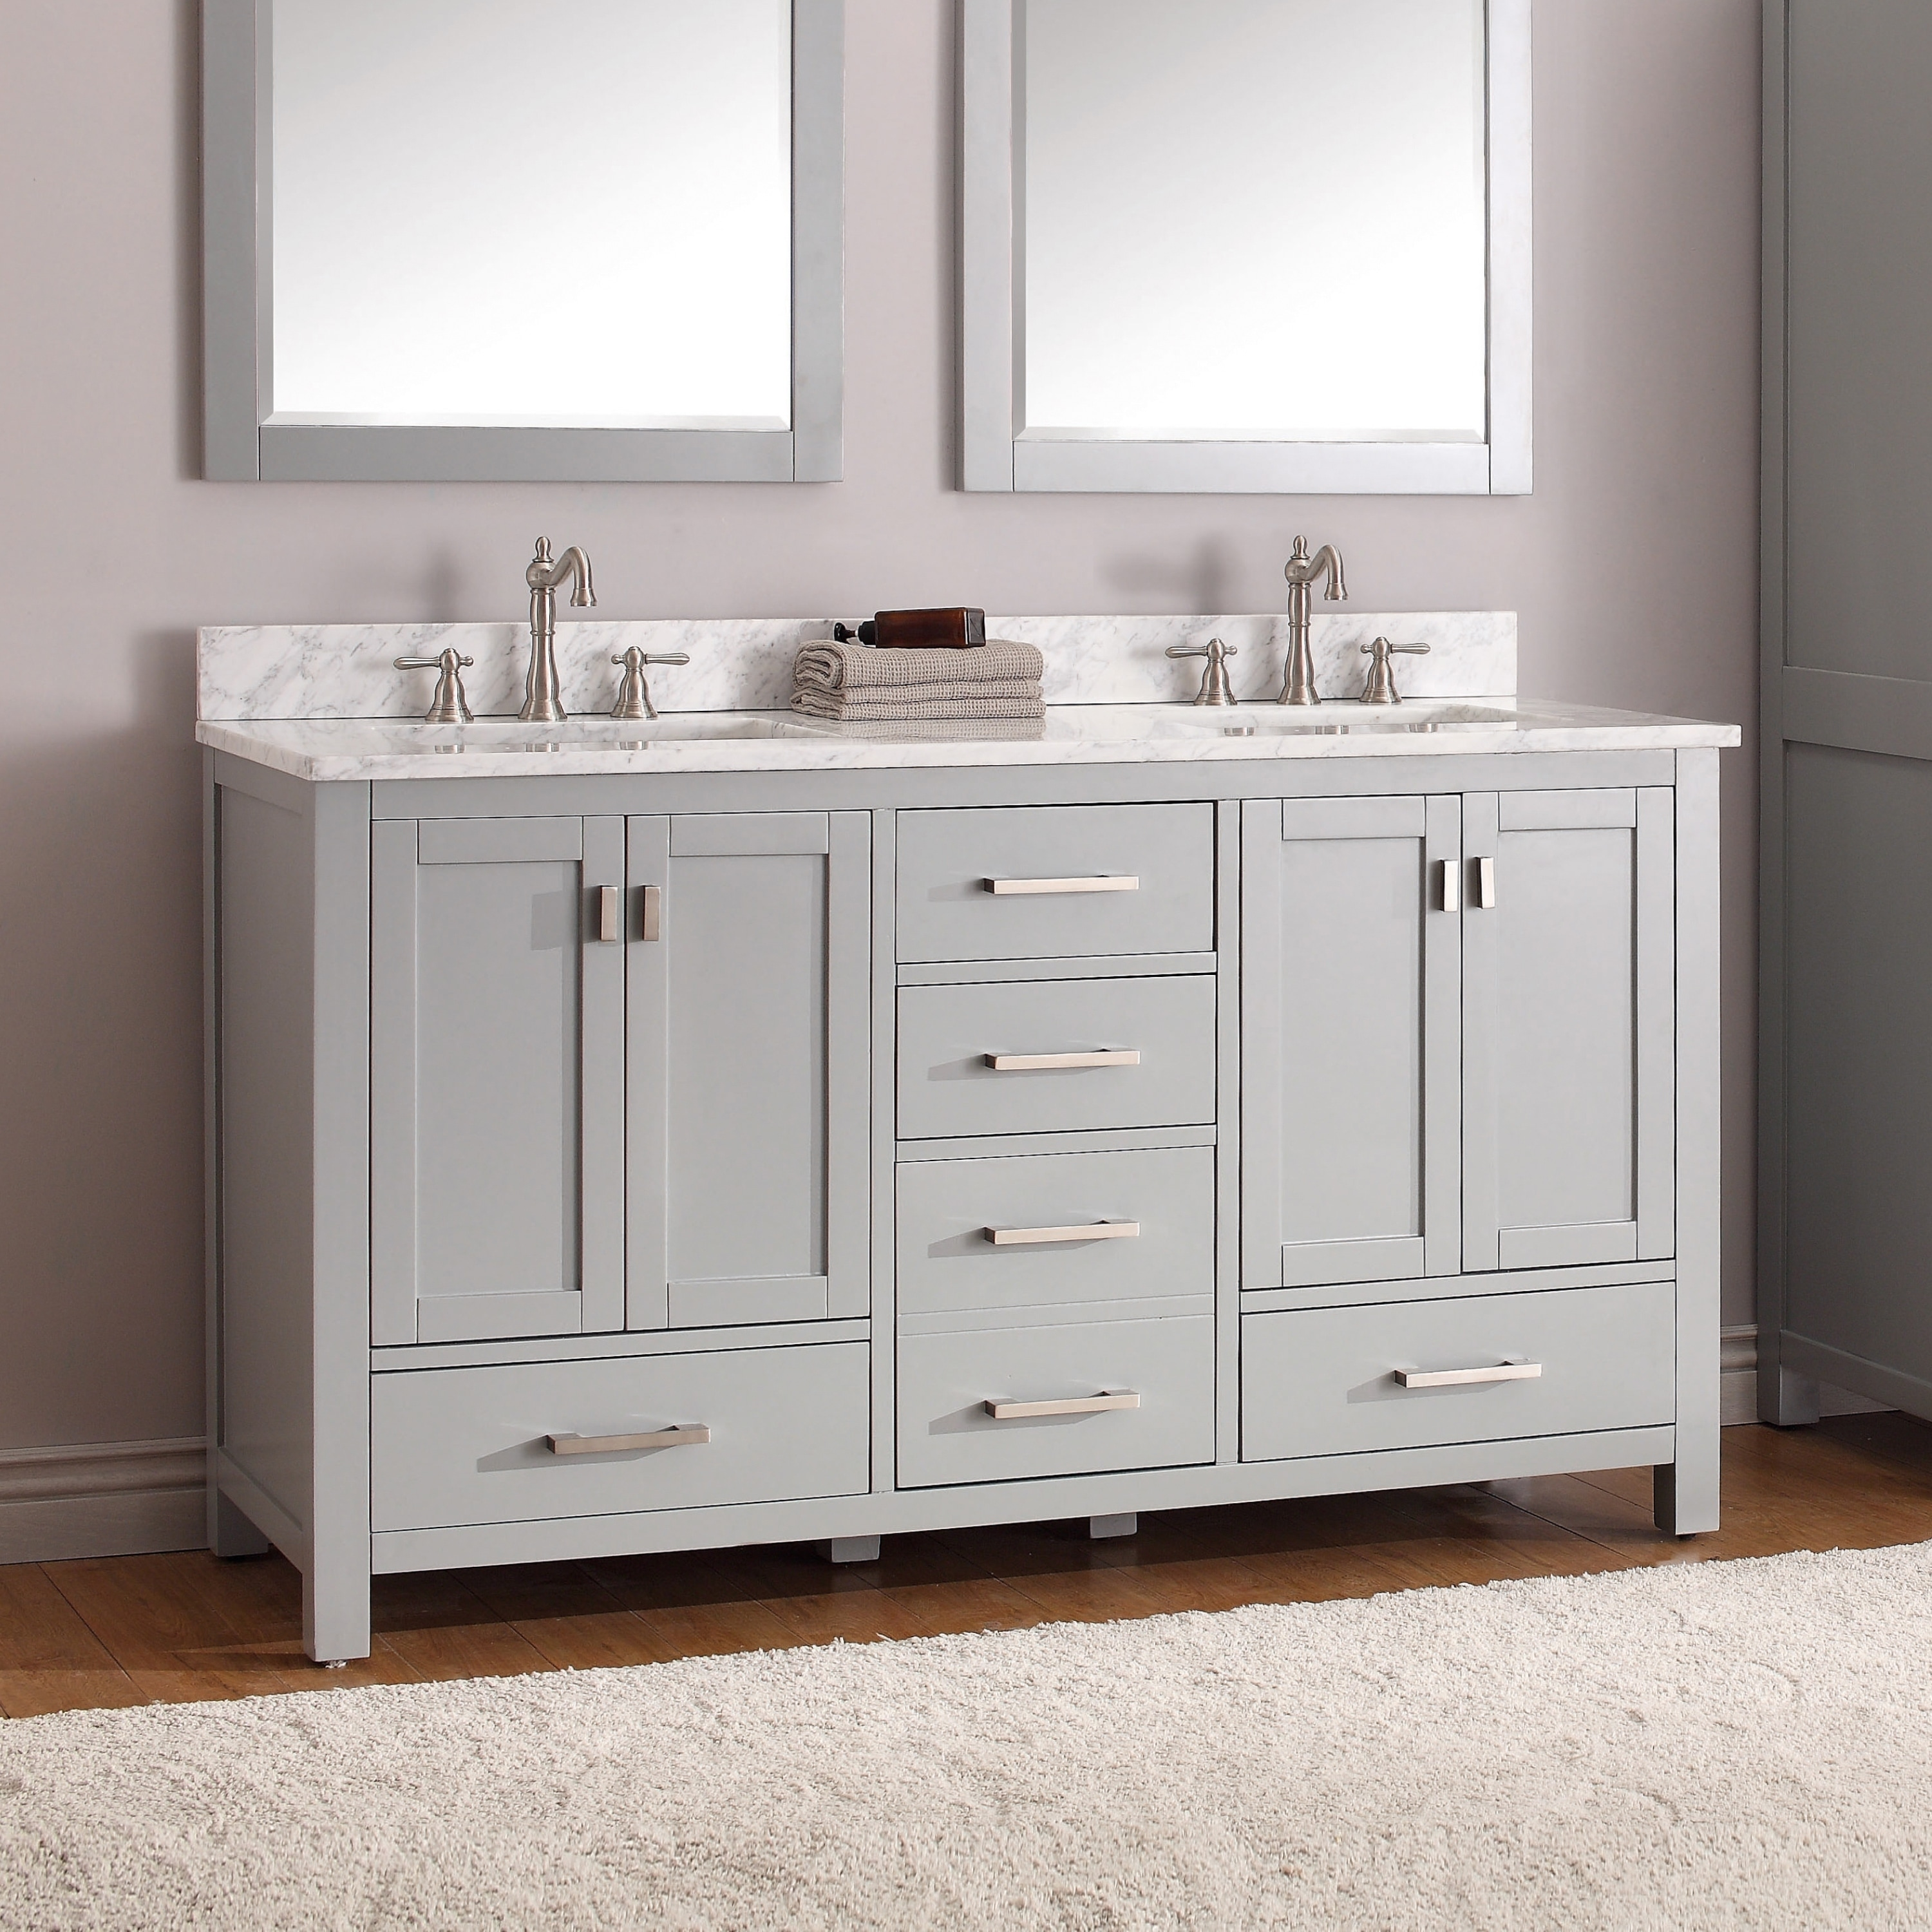 Avanity Modero 61 Inch Double Vanity Combo In Chilled Gray With Top And Sink Overstock 9378779